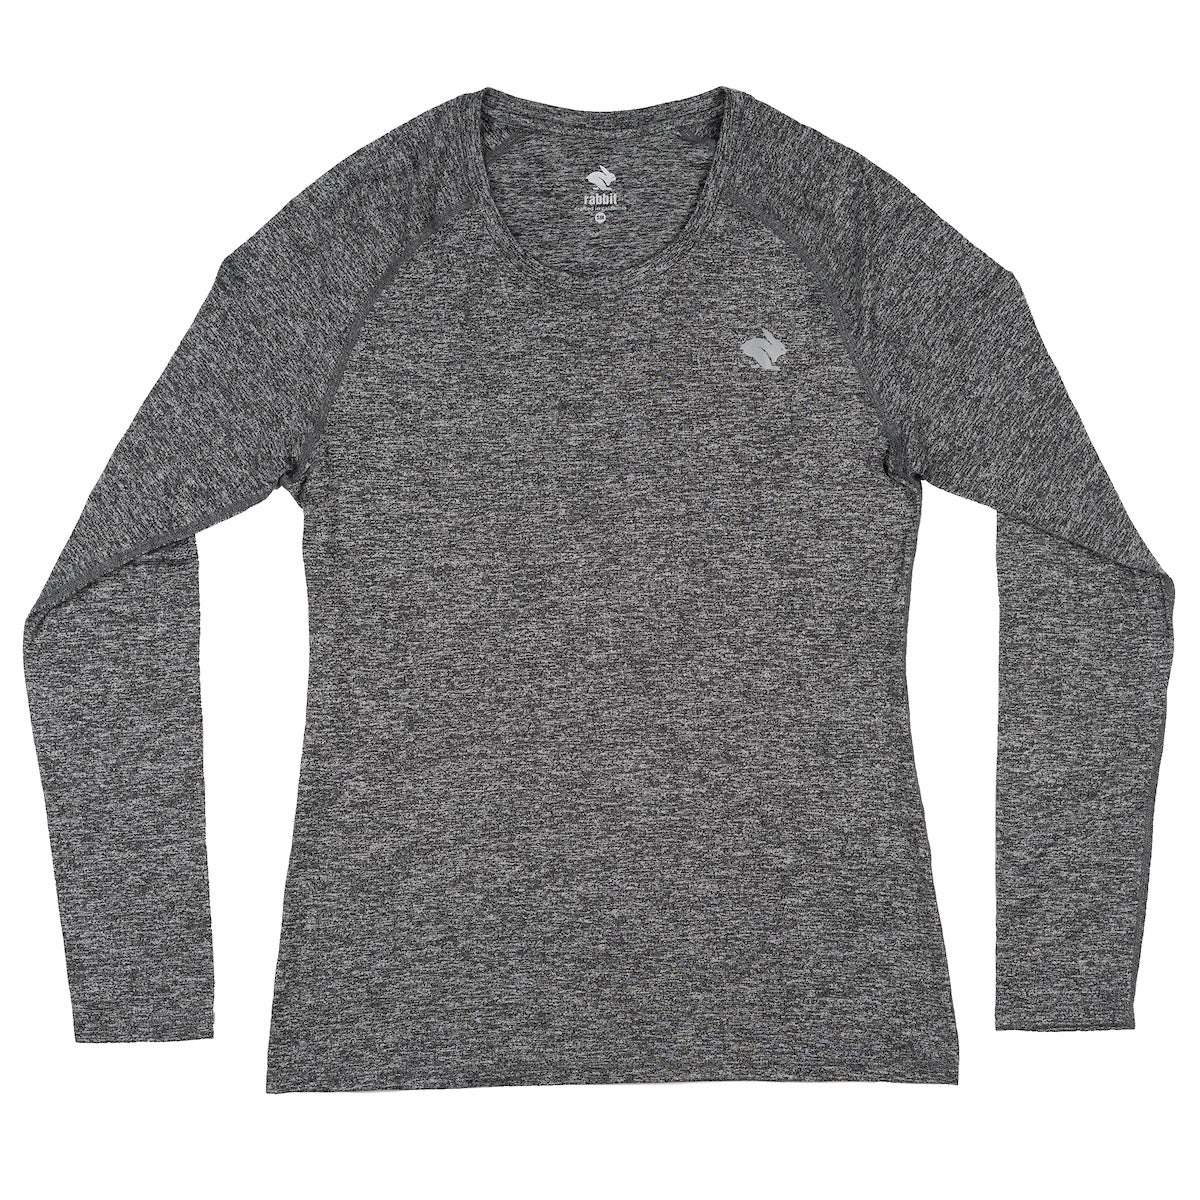 rabbit women's long sleeve EZ tee